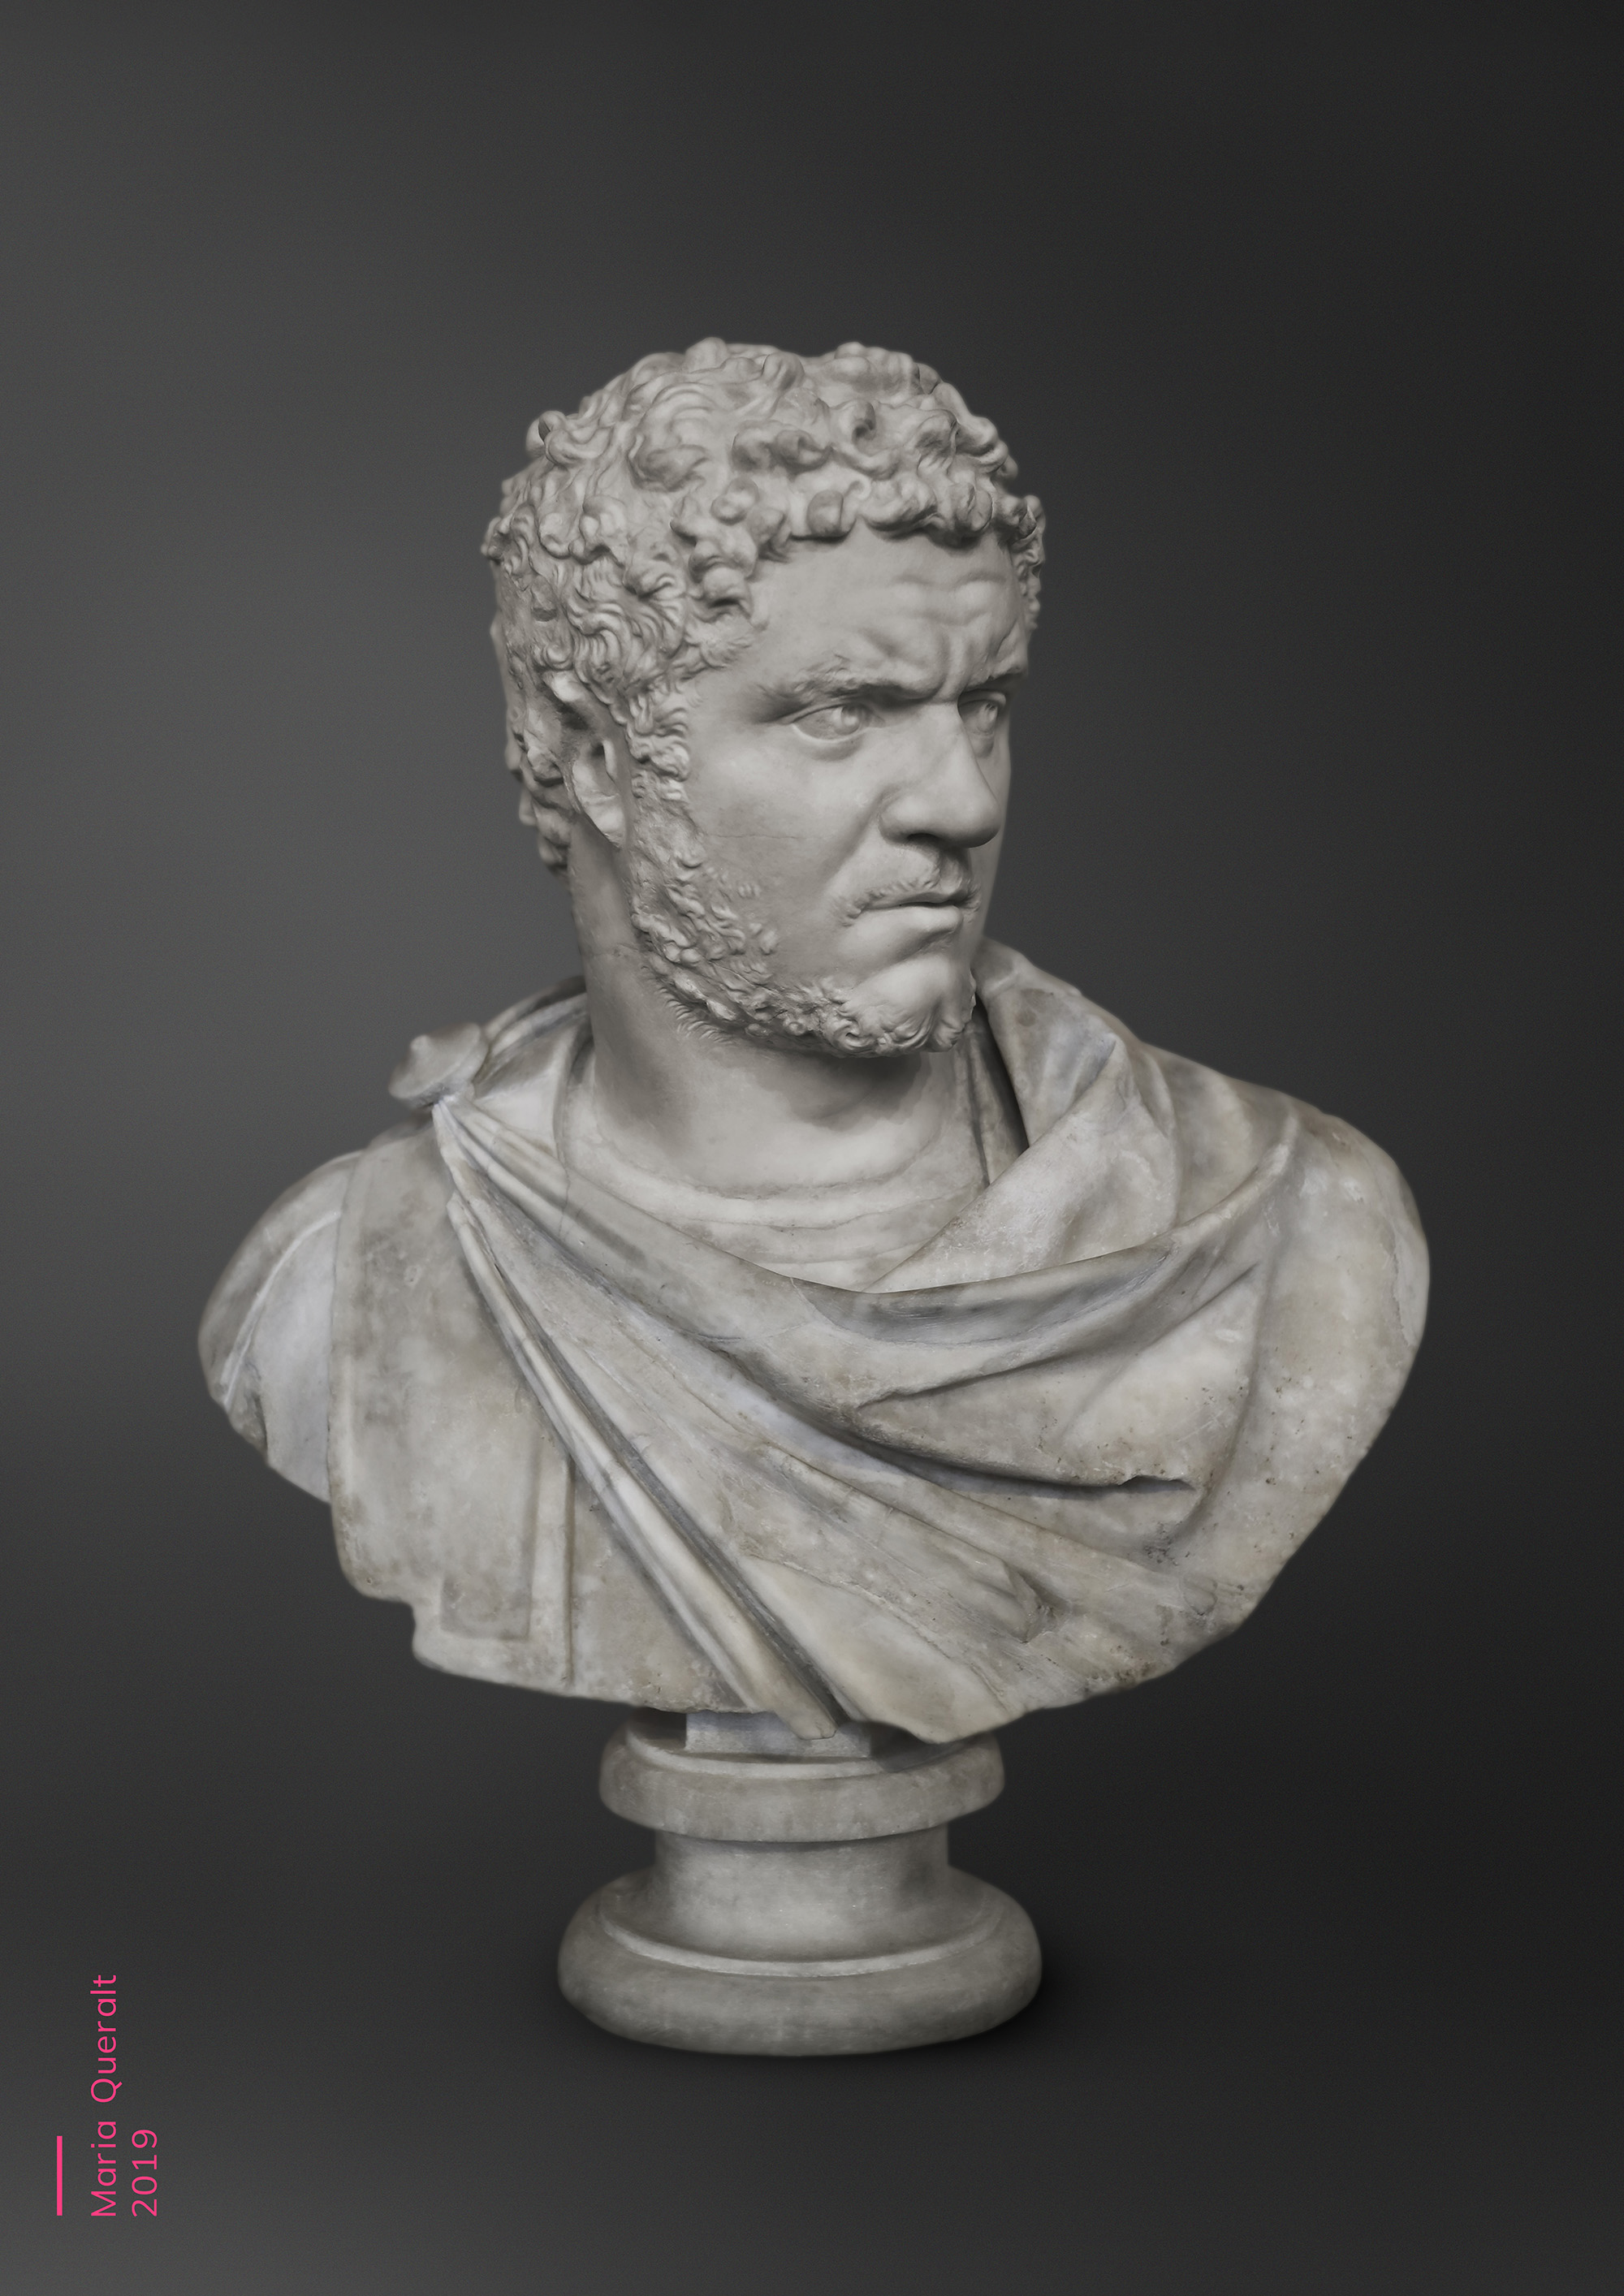 Sculpture of Roman Emperor Caracalla, Louvre Museum, Paris. Part of the Ancient Influencers Photography series by Maria Queralt. Photography and retouche by Maria Queralt